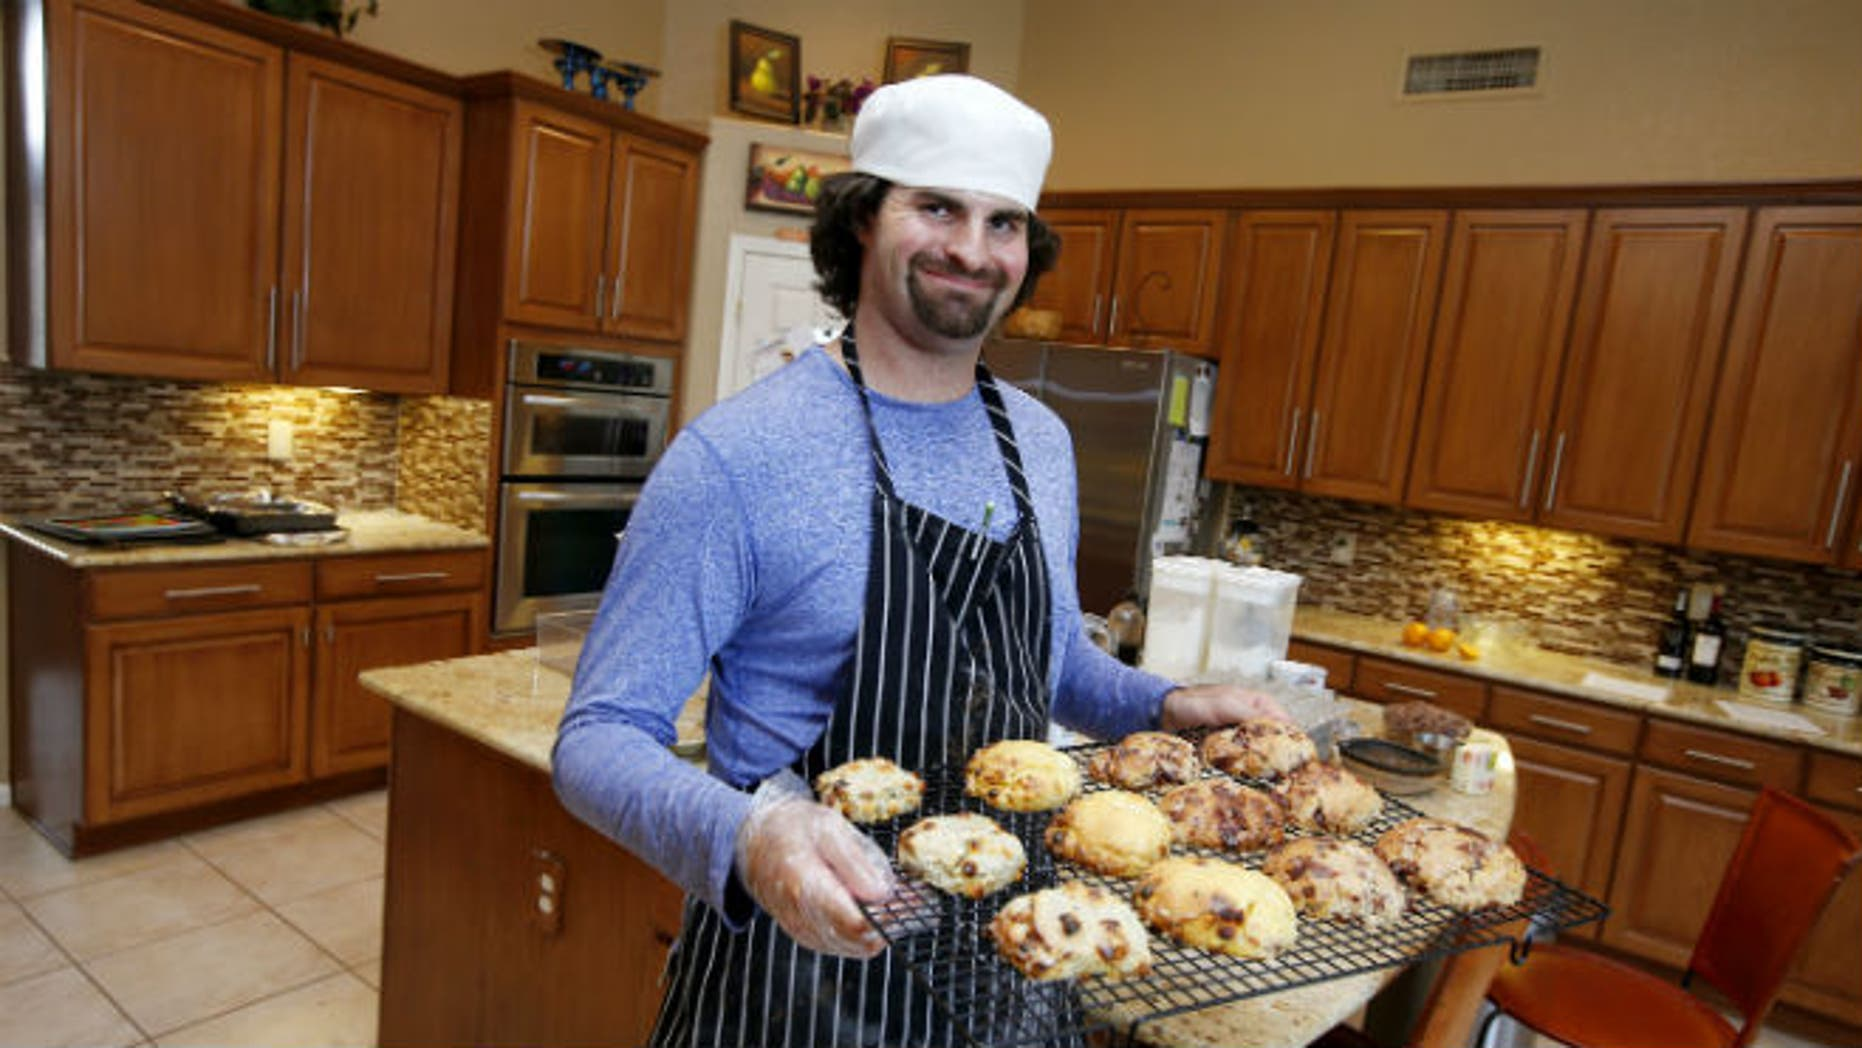 In this July 15, 2014 photo, Matt Cottle, owner of Stuttering King Bakery, smiles as he holds a tray of his scones in his parents' kitchen in Scottsdale, Ariz. (AP Photo/Ross D. Franklin)